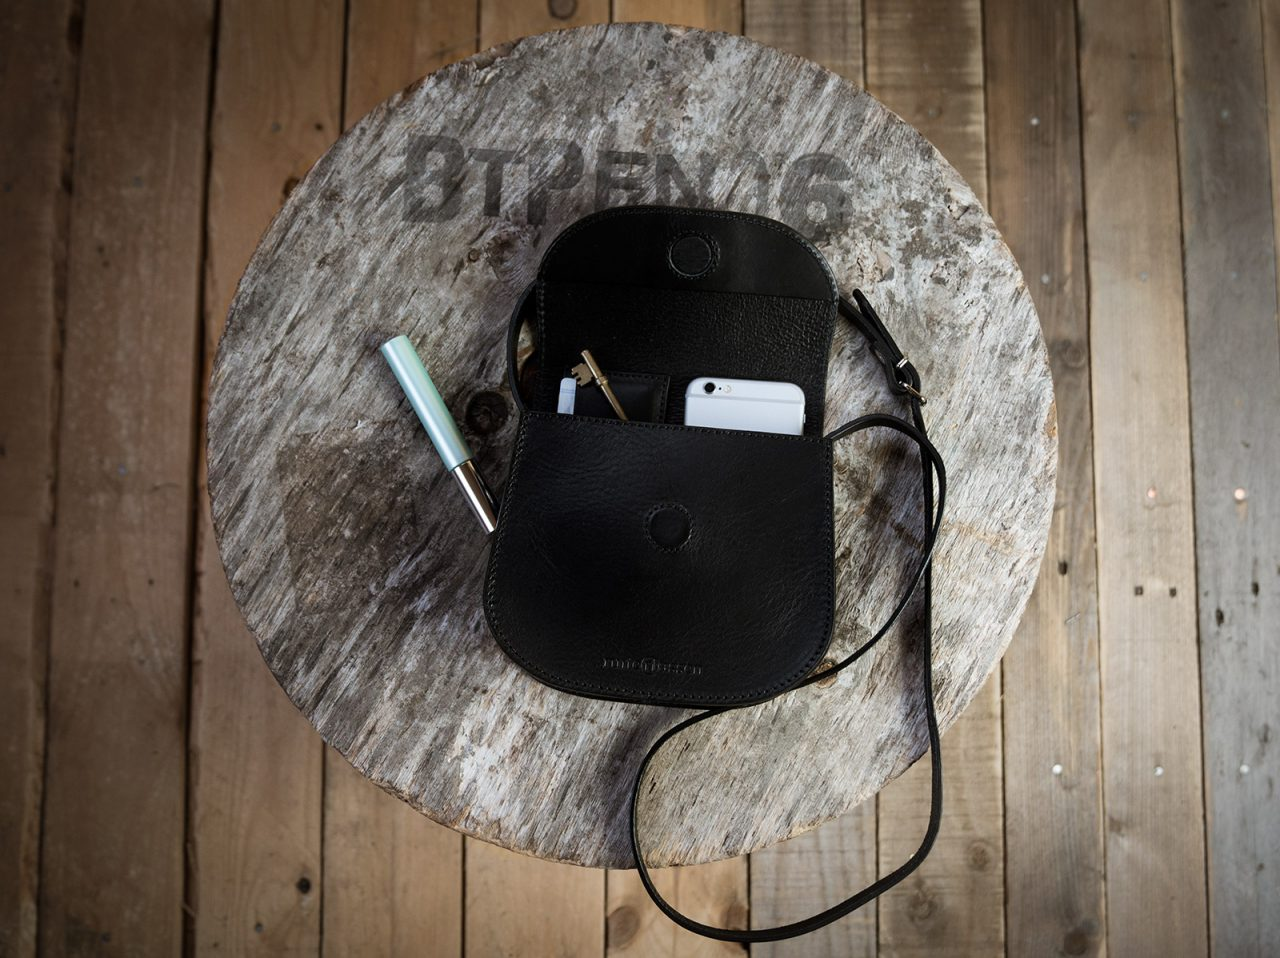 Small black leather bag with accessories.